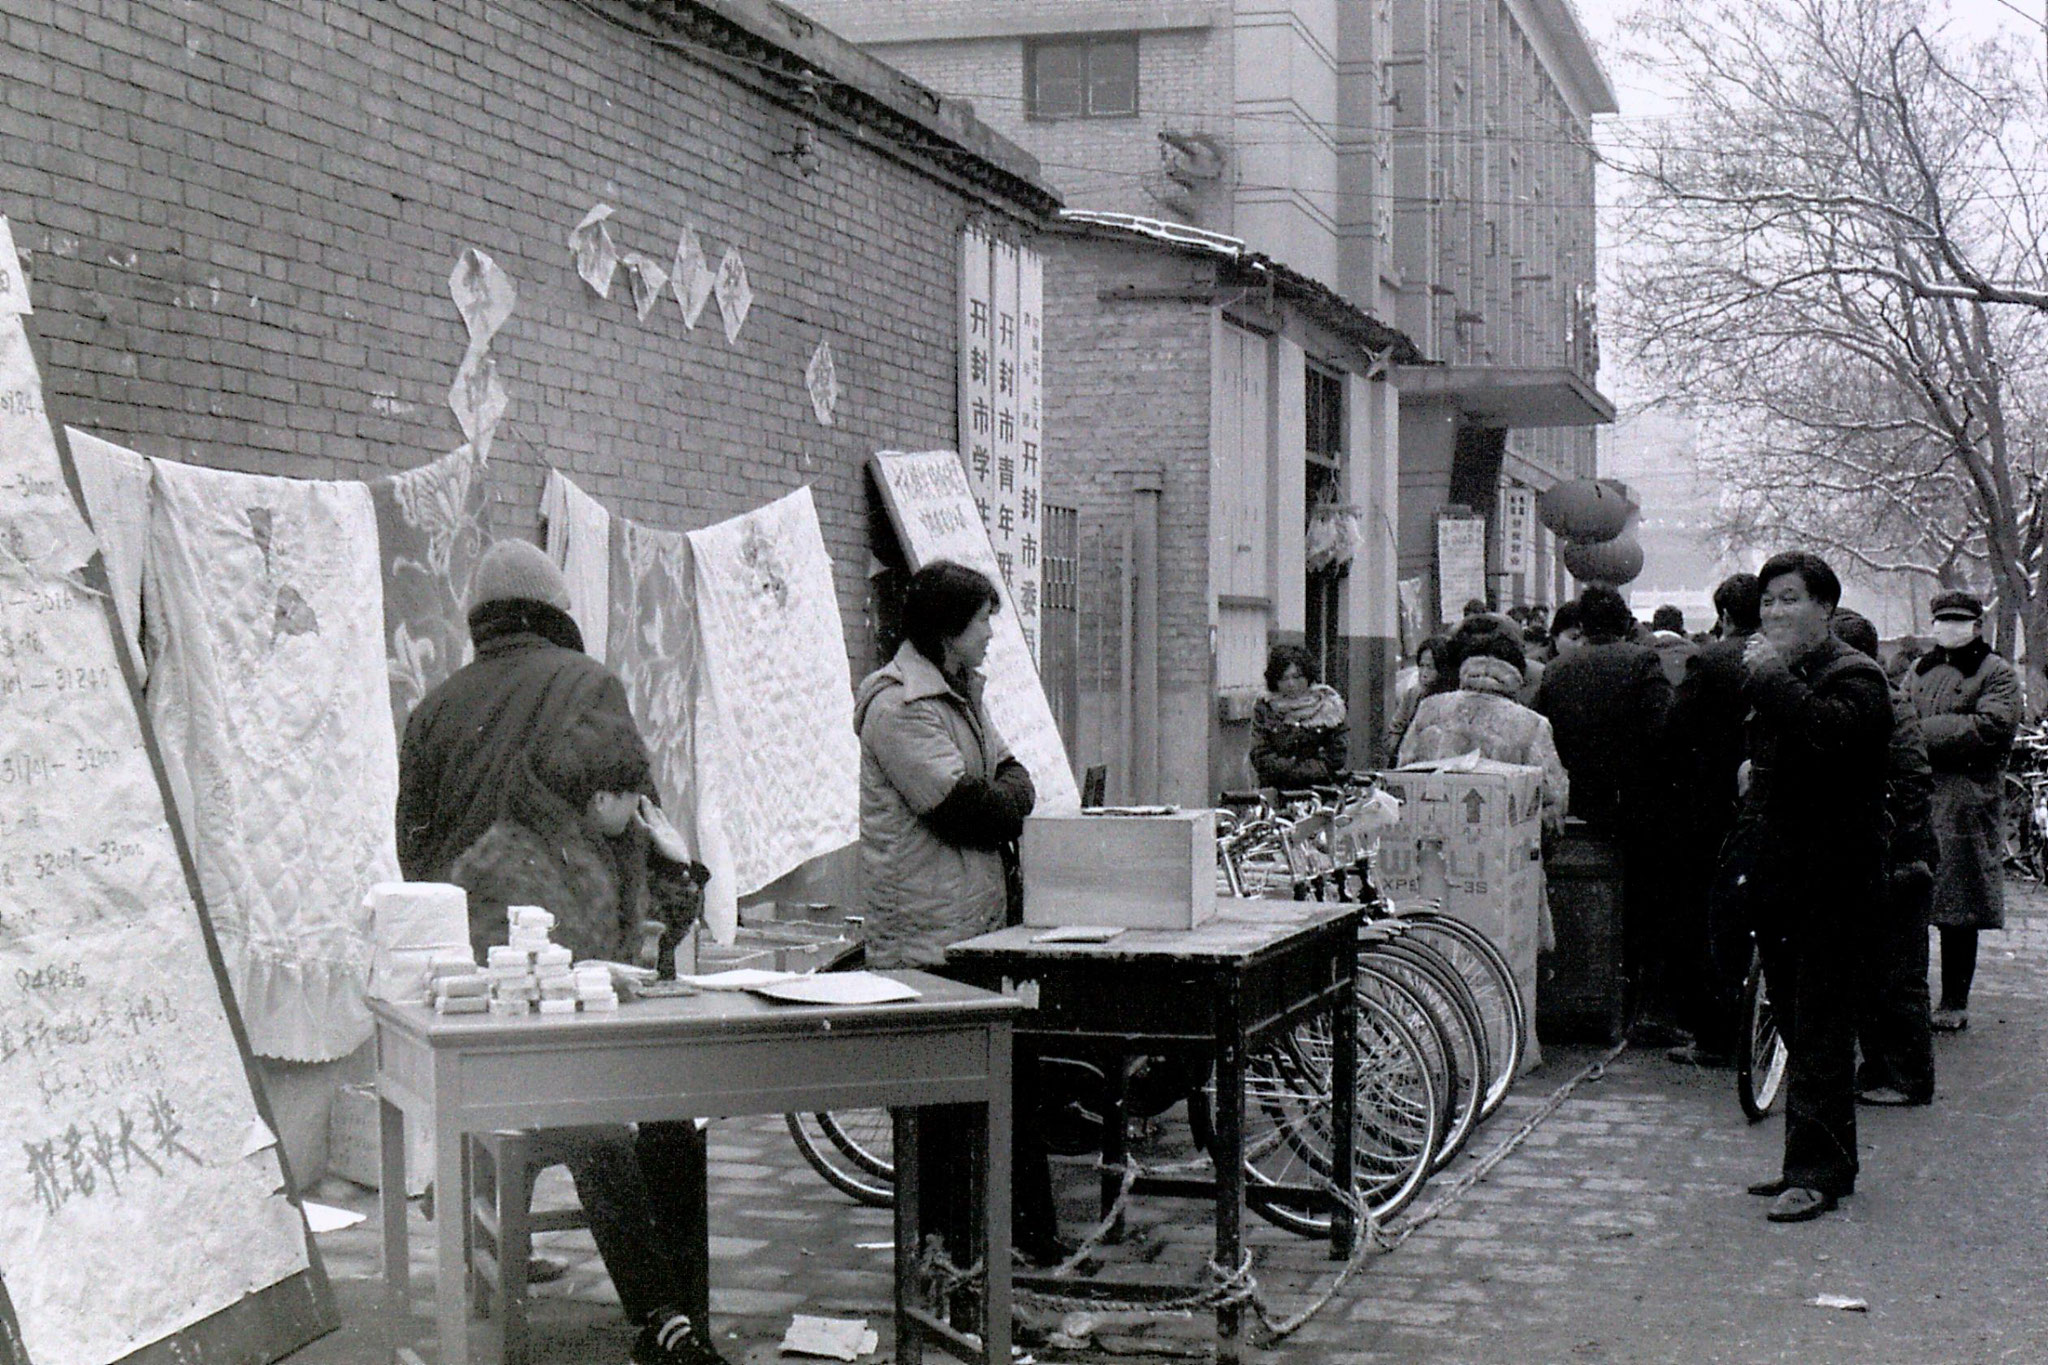 25/2/1989: 0: Kaifeng, street lottery outside Xiangguo Monastery